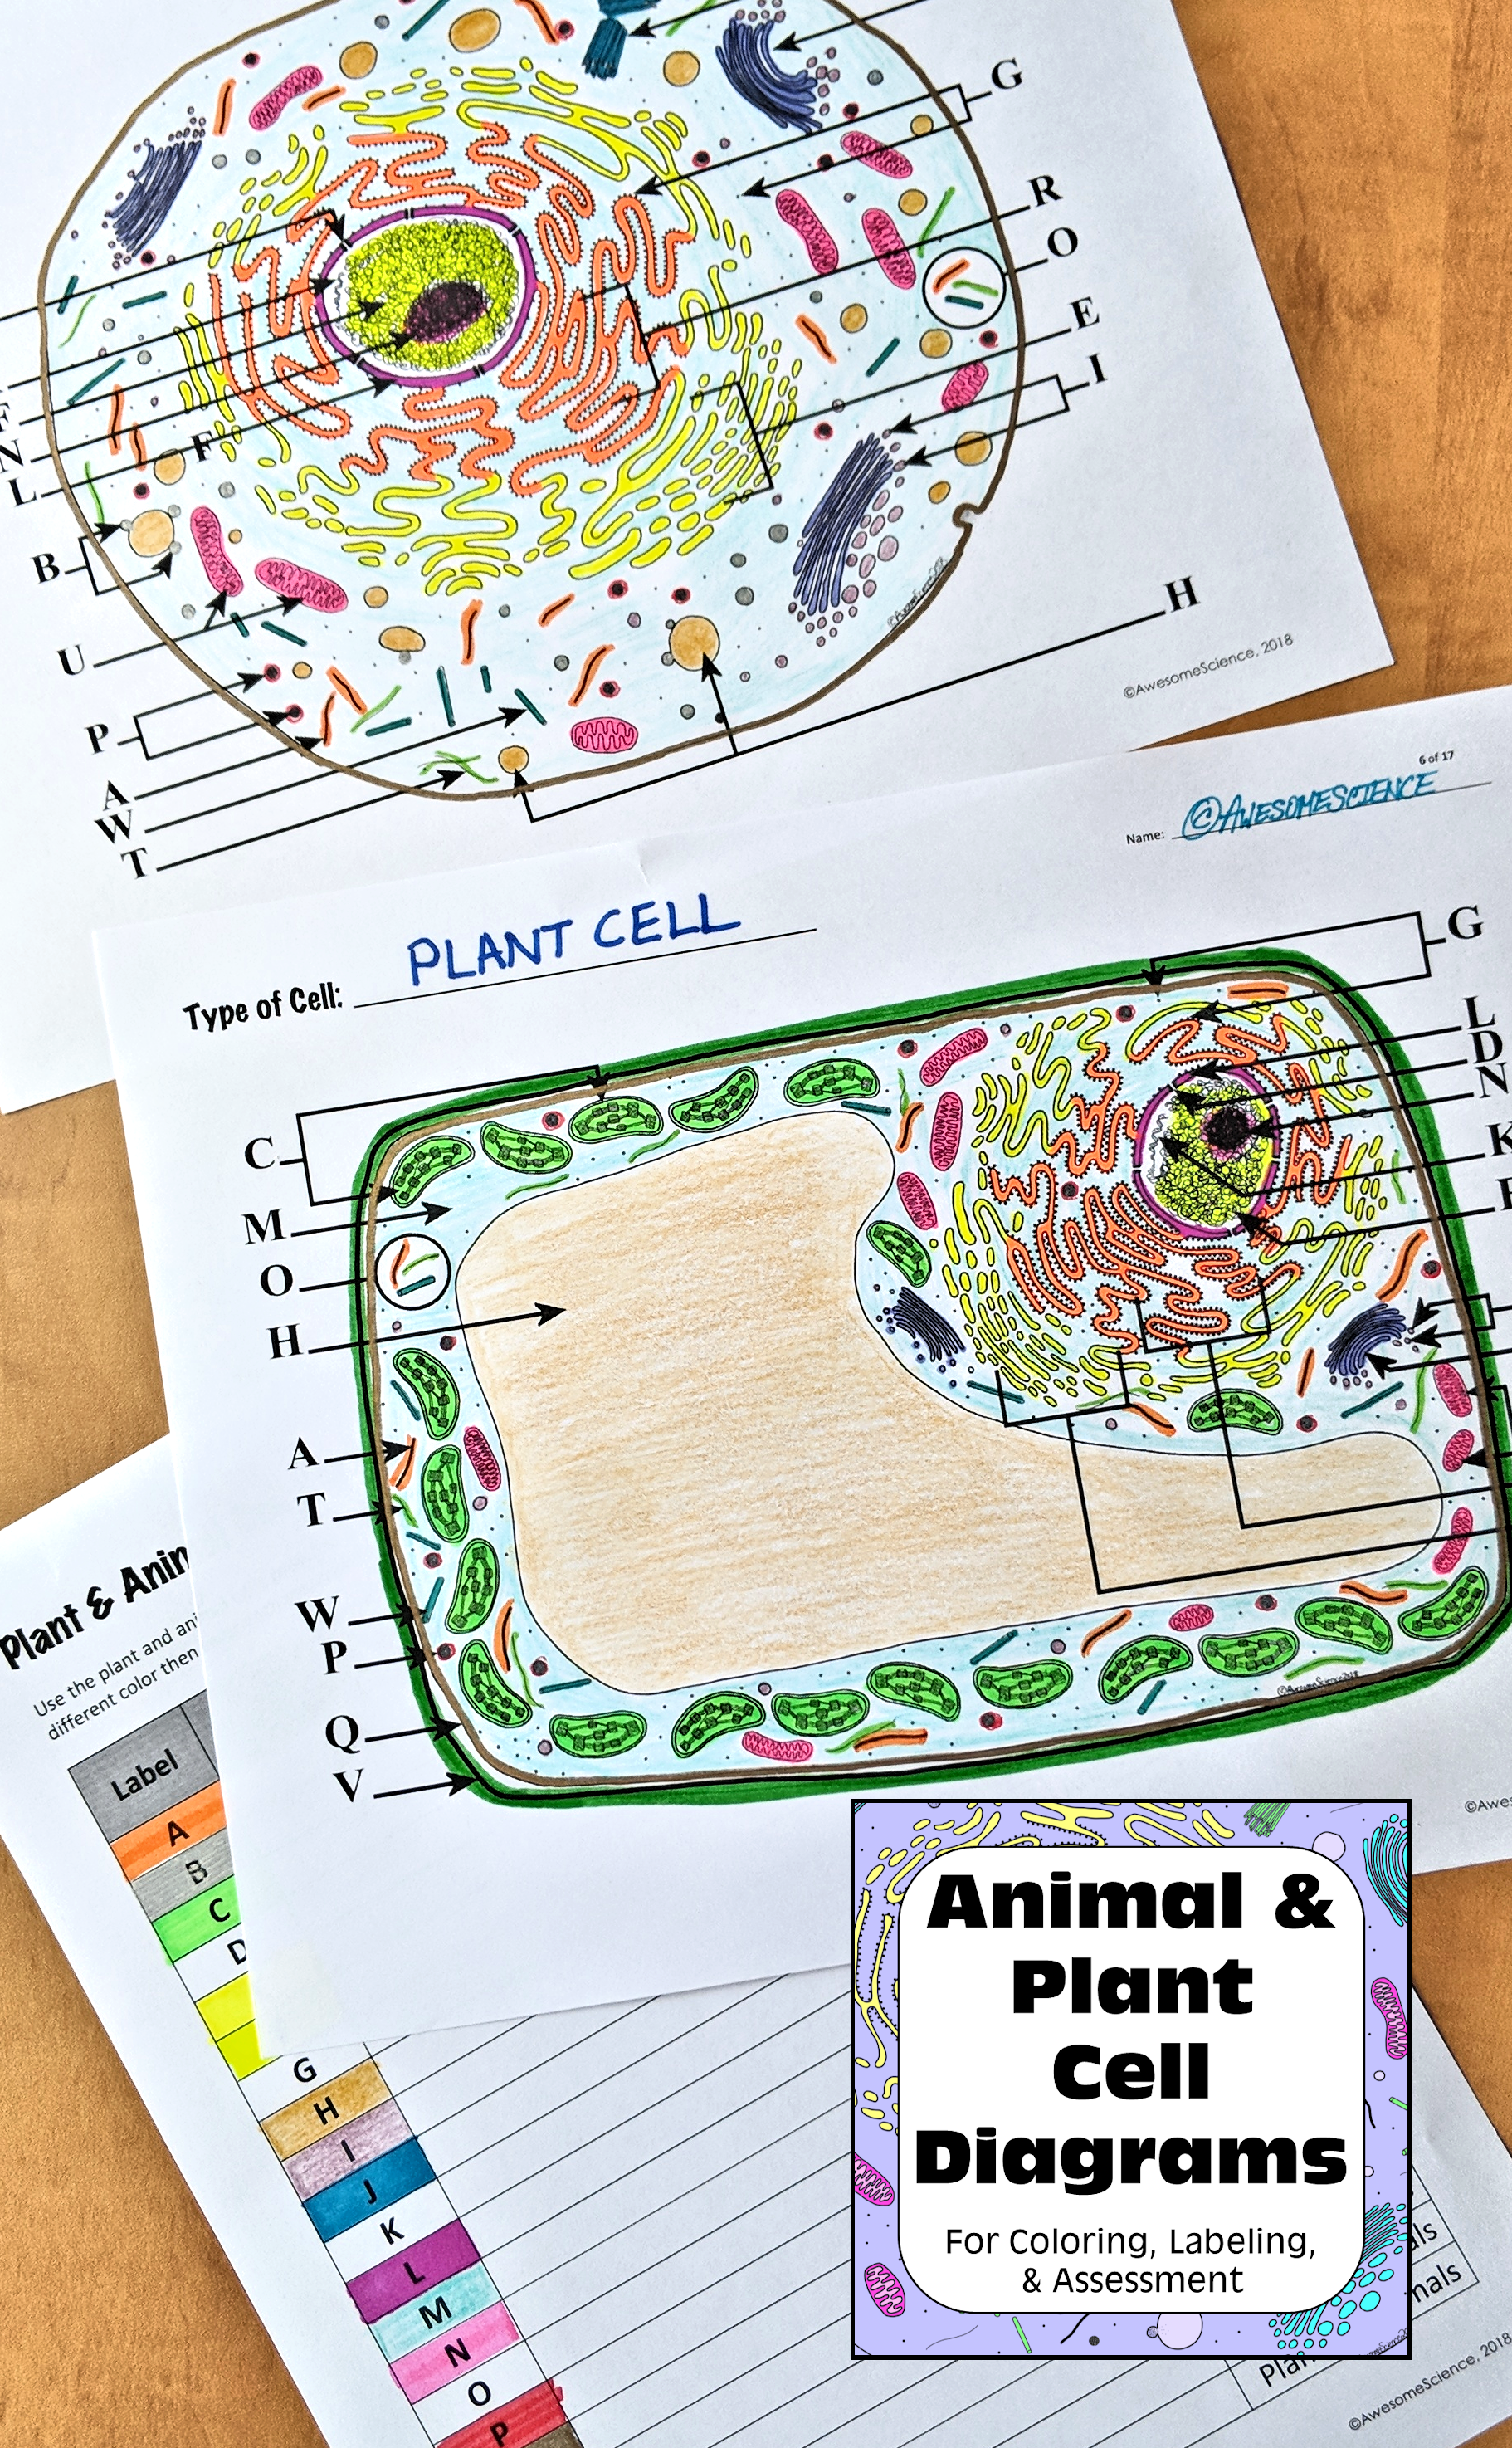 hight resolution of plant cell animal cell diagrams perfect for middle school or high school biology cell membrane plasma membrane cell wall centrioles chloroplasts